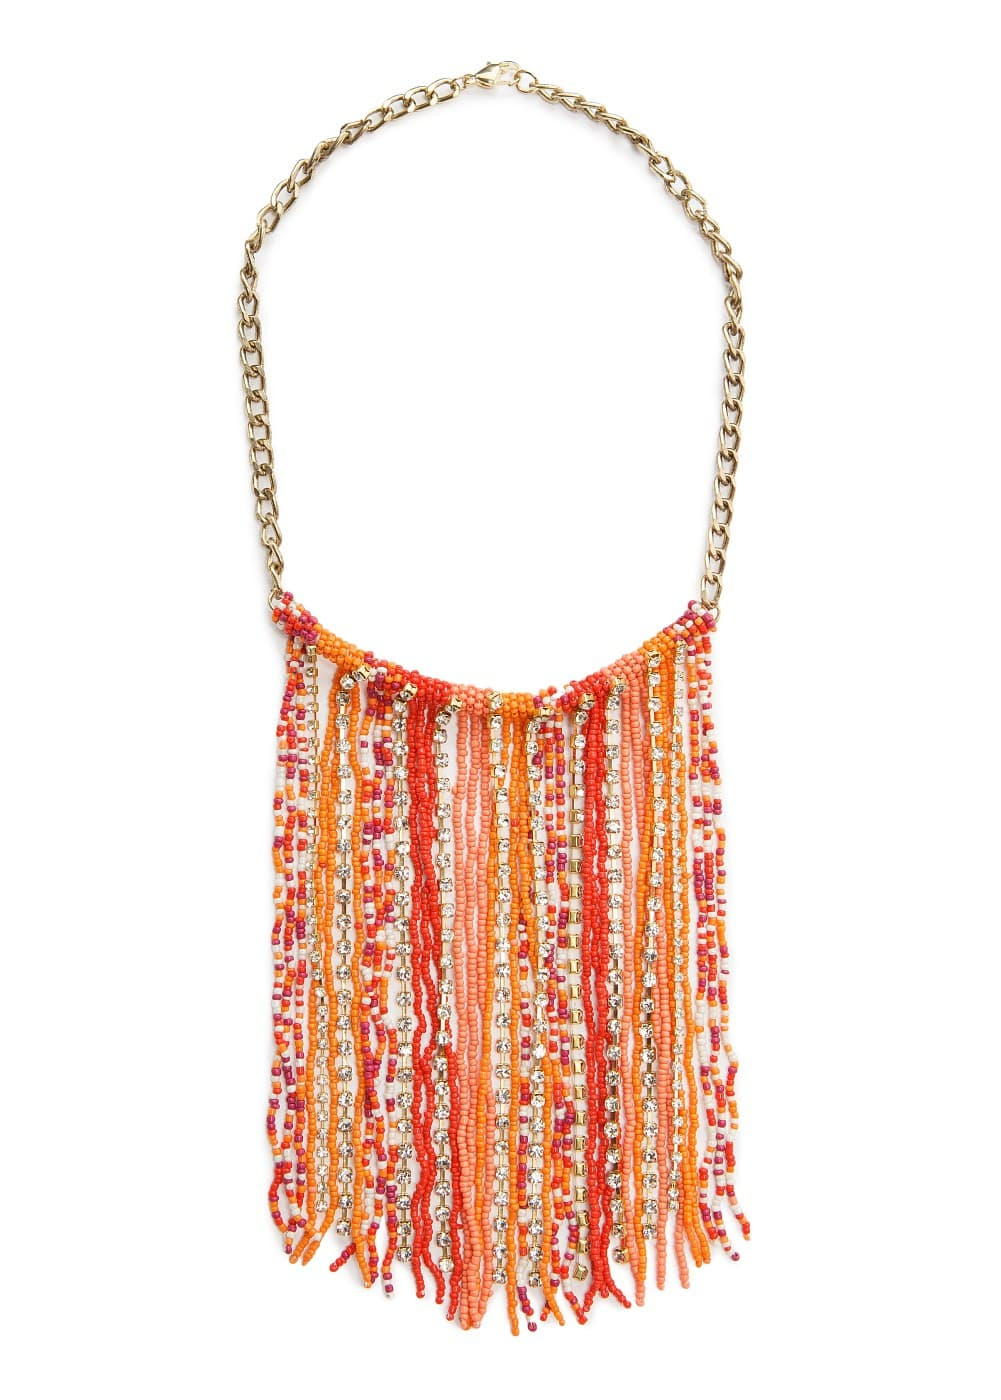 Beads cascading necklace